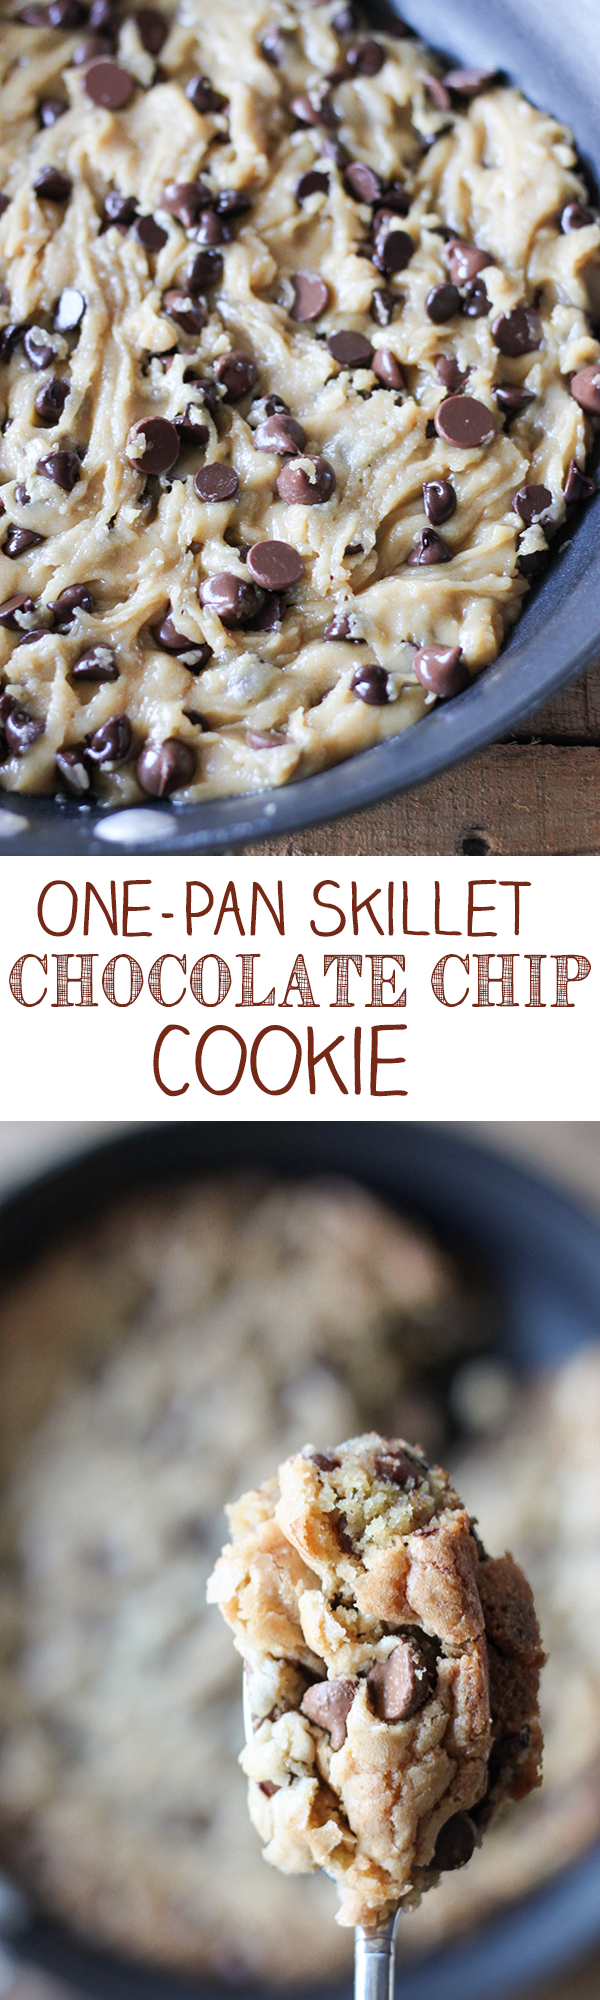 One-Pan Skillet Chocolate Chip Cookie